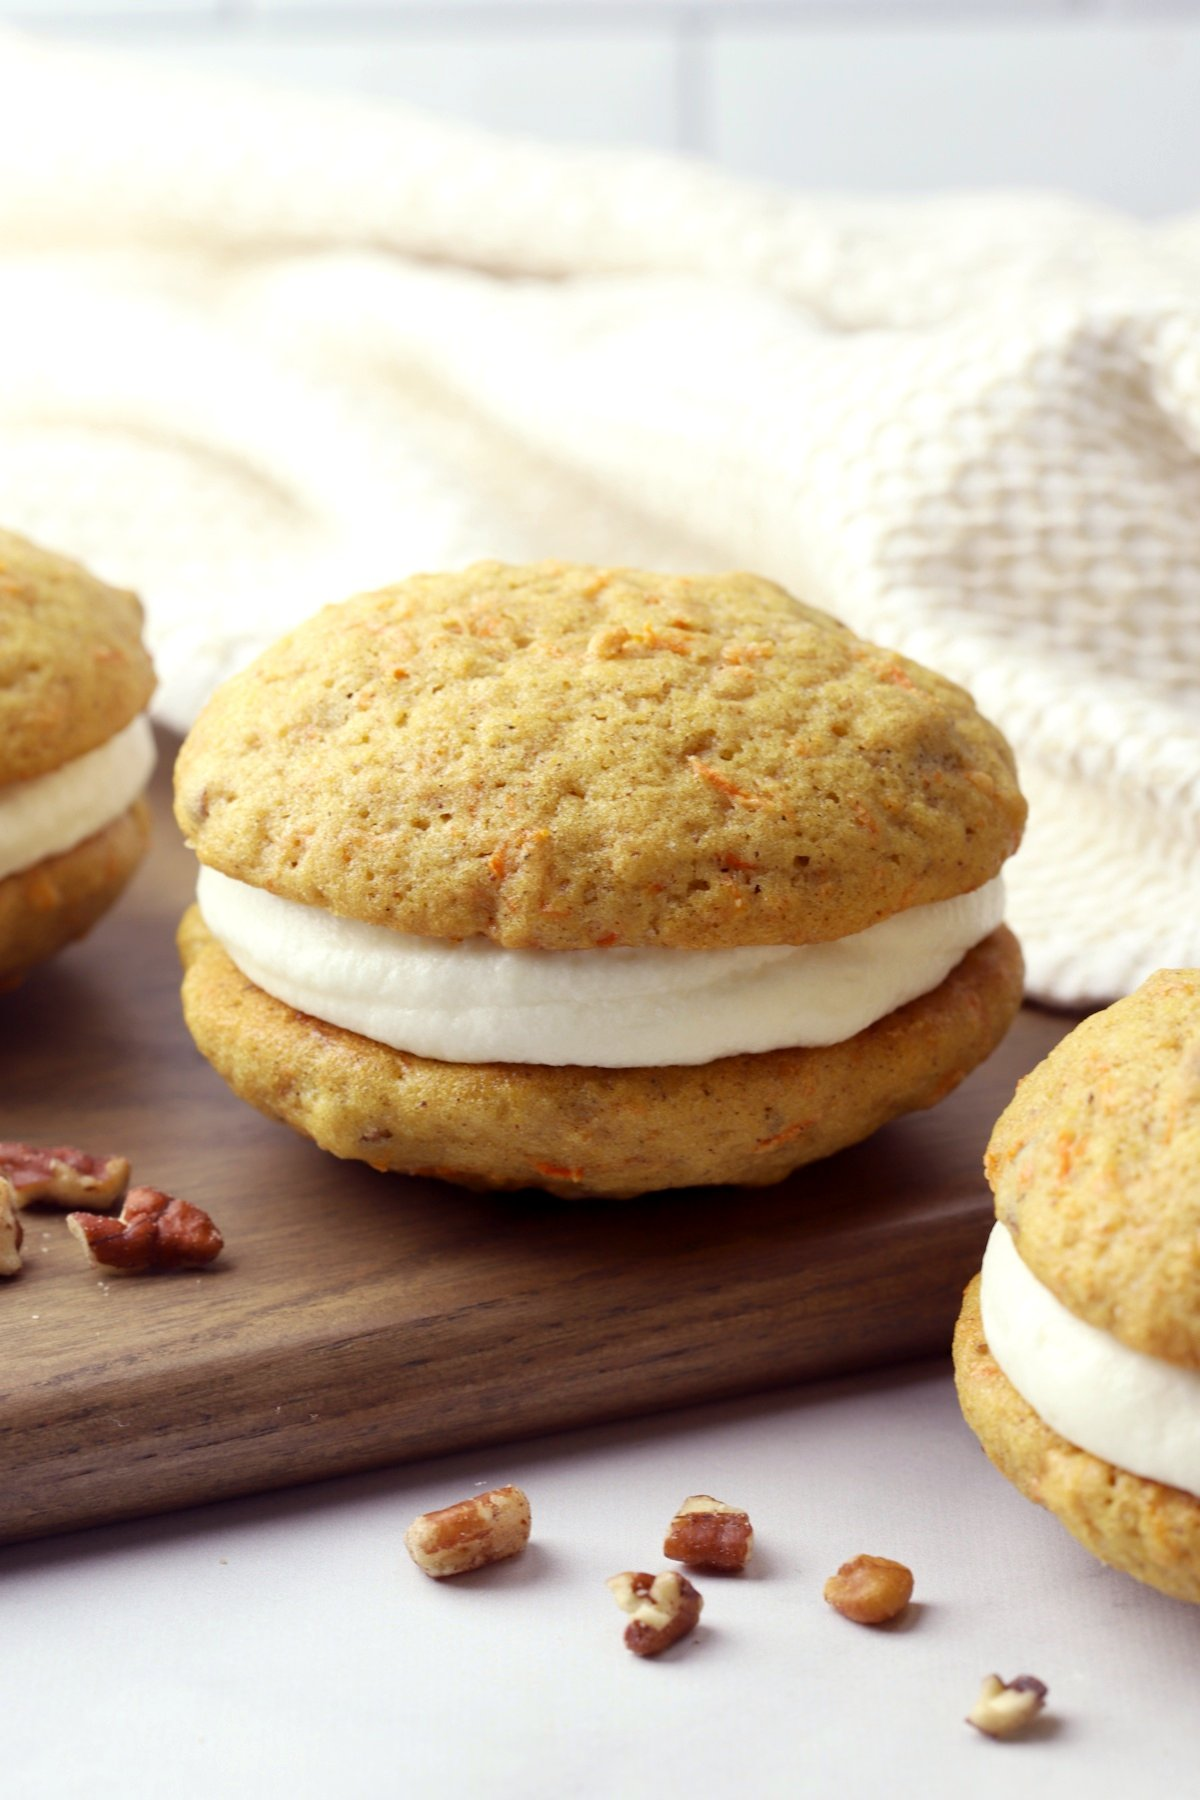 Carrot cake whoopie pies on a wooden cutting board.